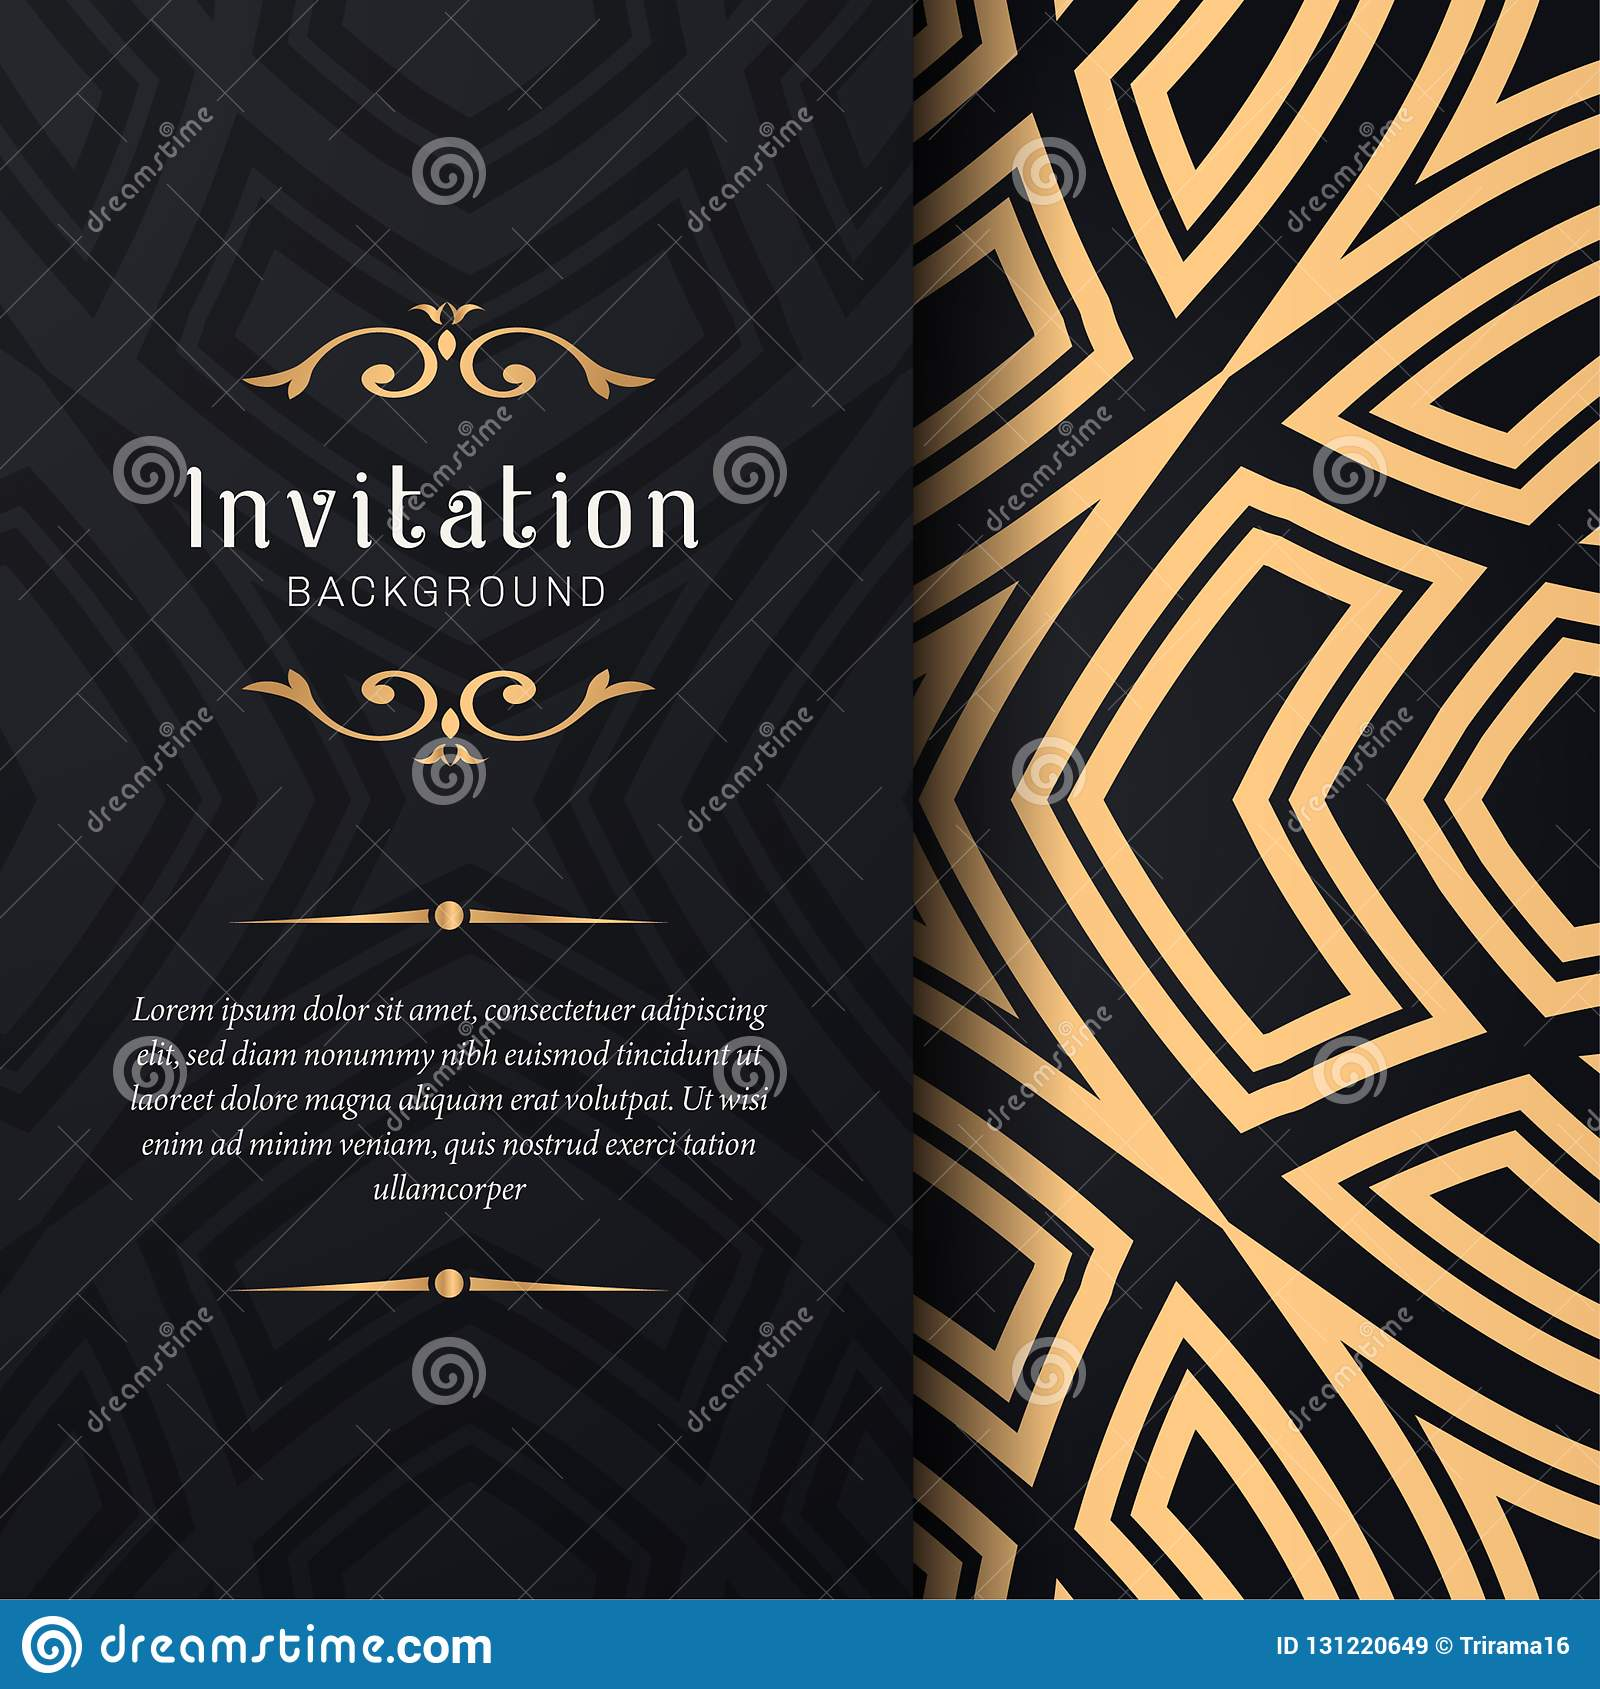 Greeting Card Invitation With Lace And Floral Ornaments